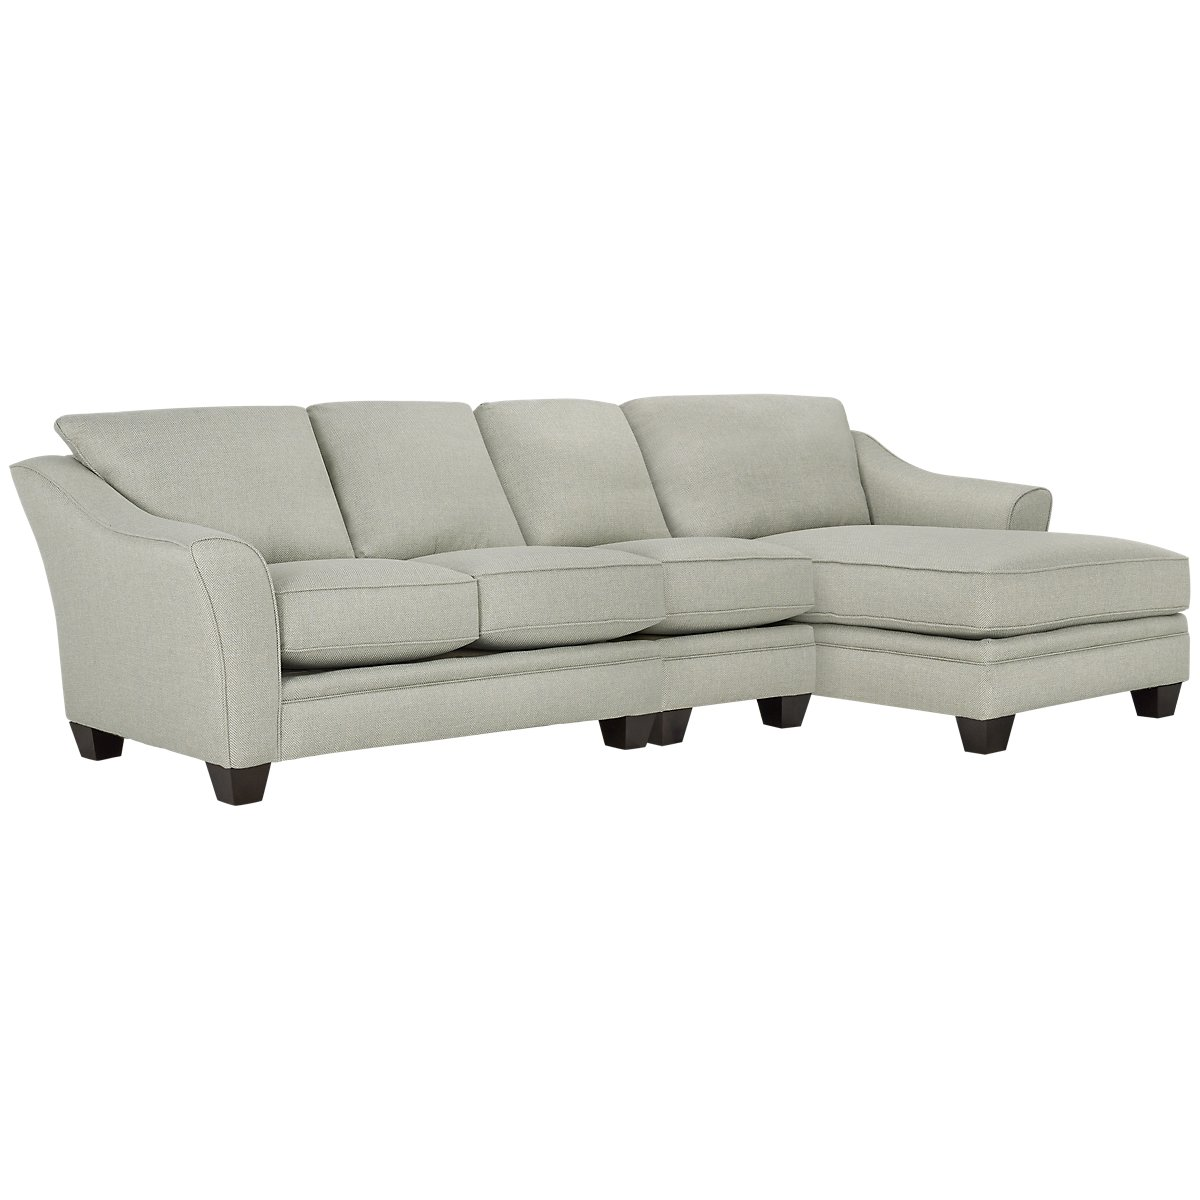 Avery Light Green Fabric Small Right Chaise Sectional